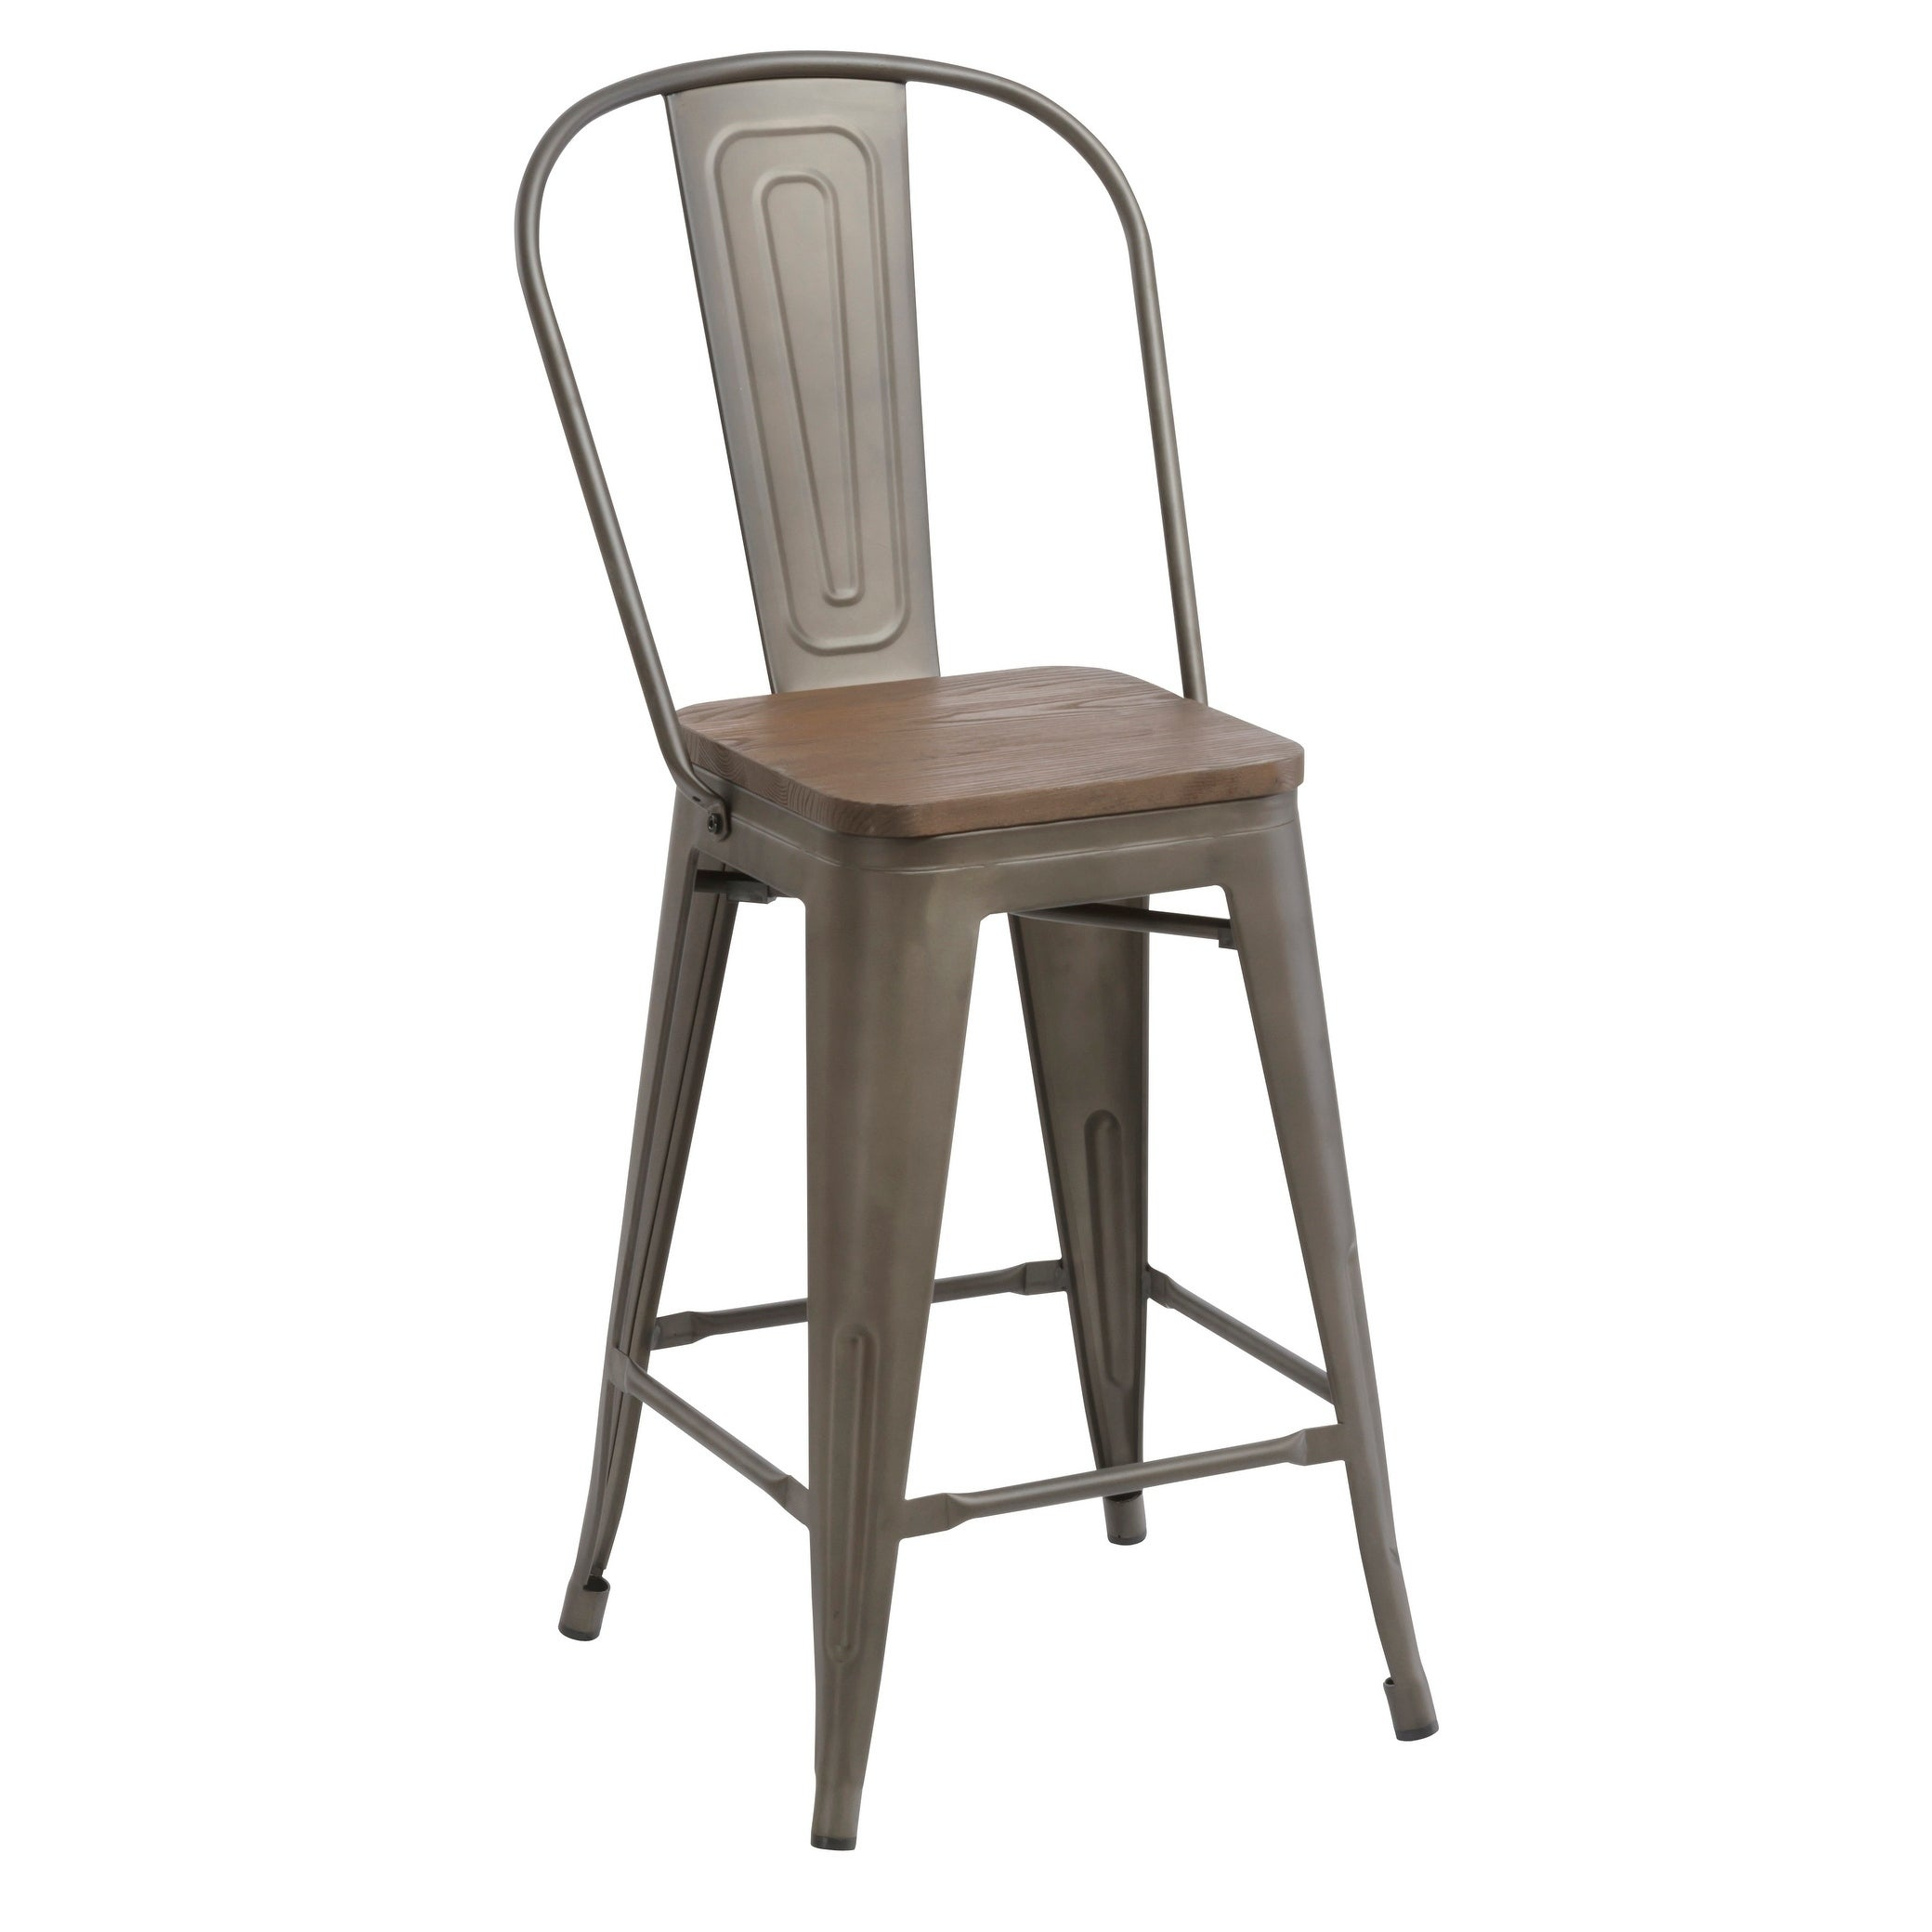 Shop Antique Distressed Rustic Wood 24 High Back Chair Bar Stool